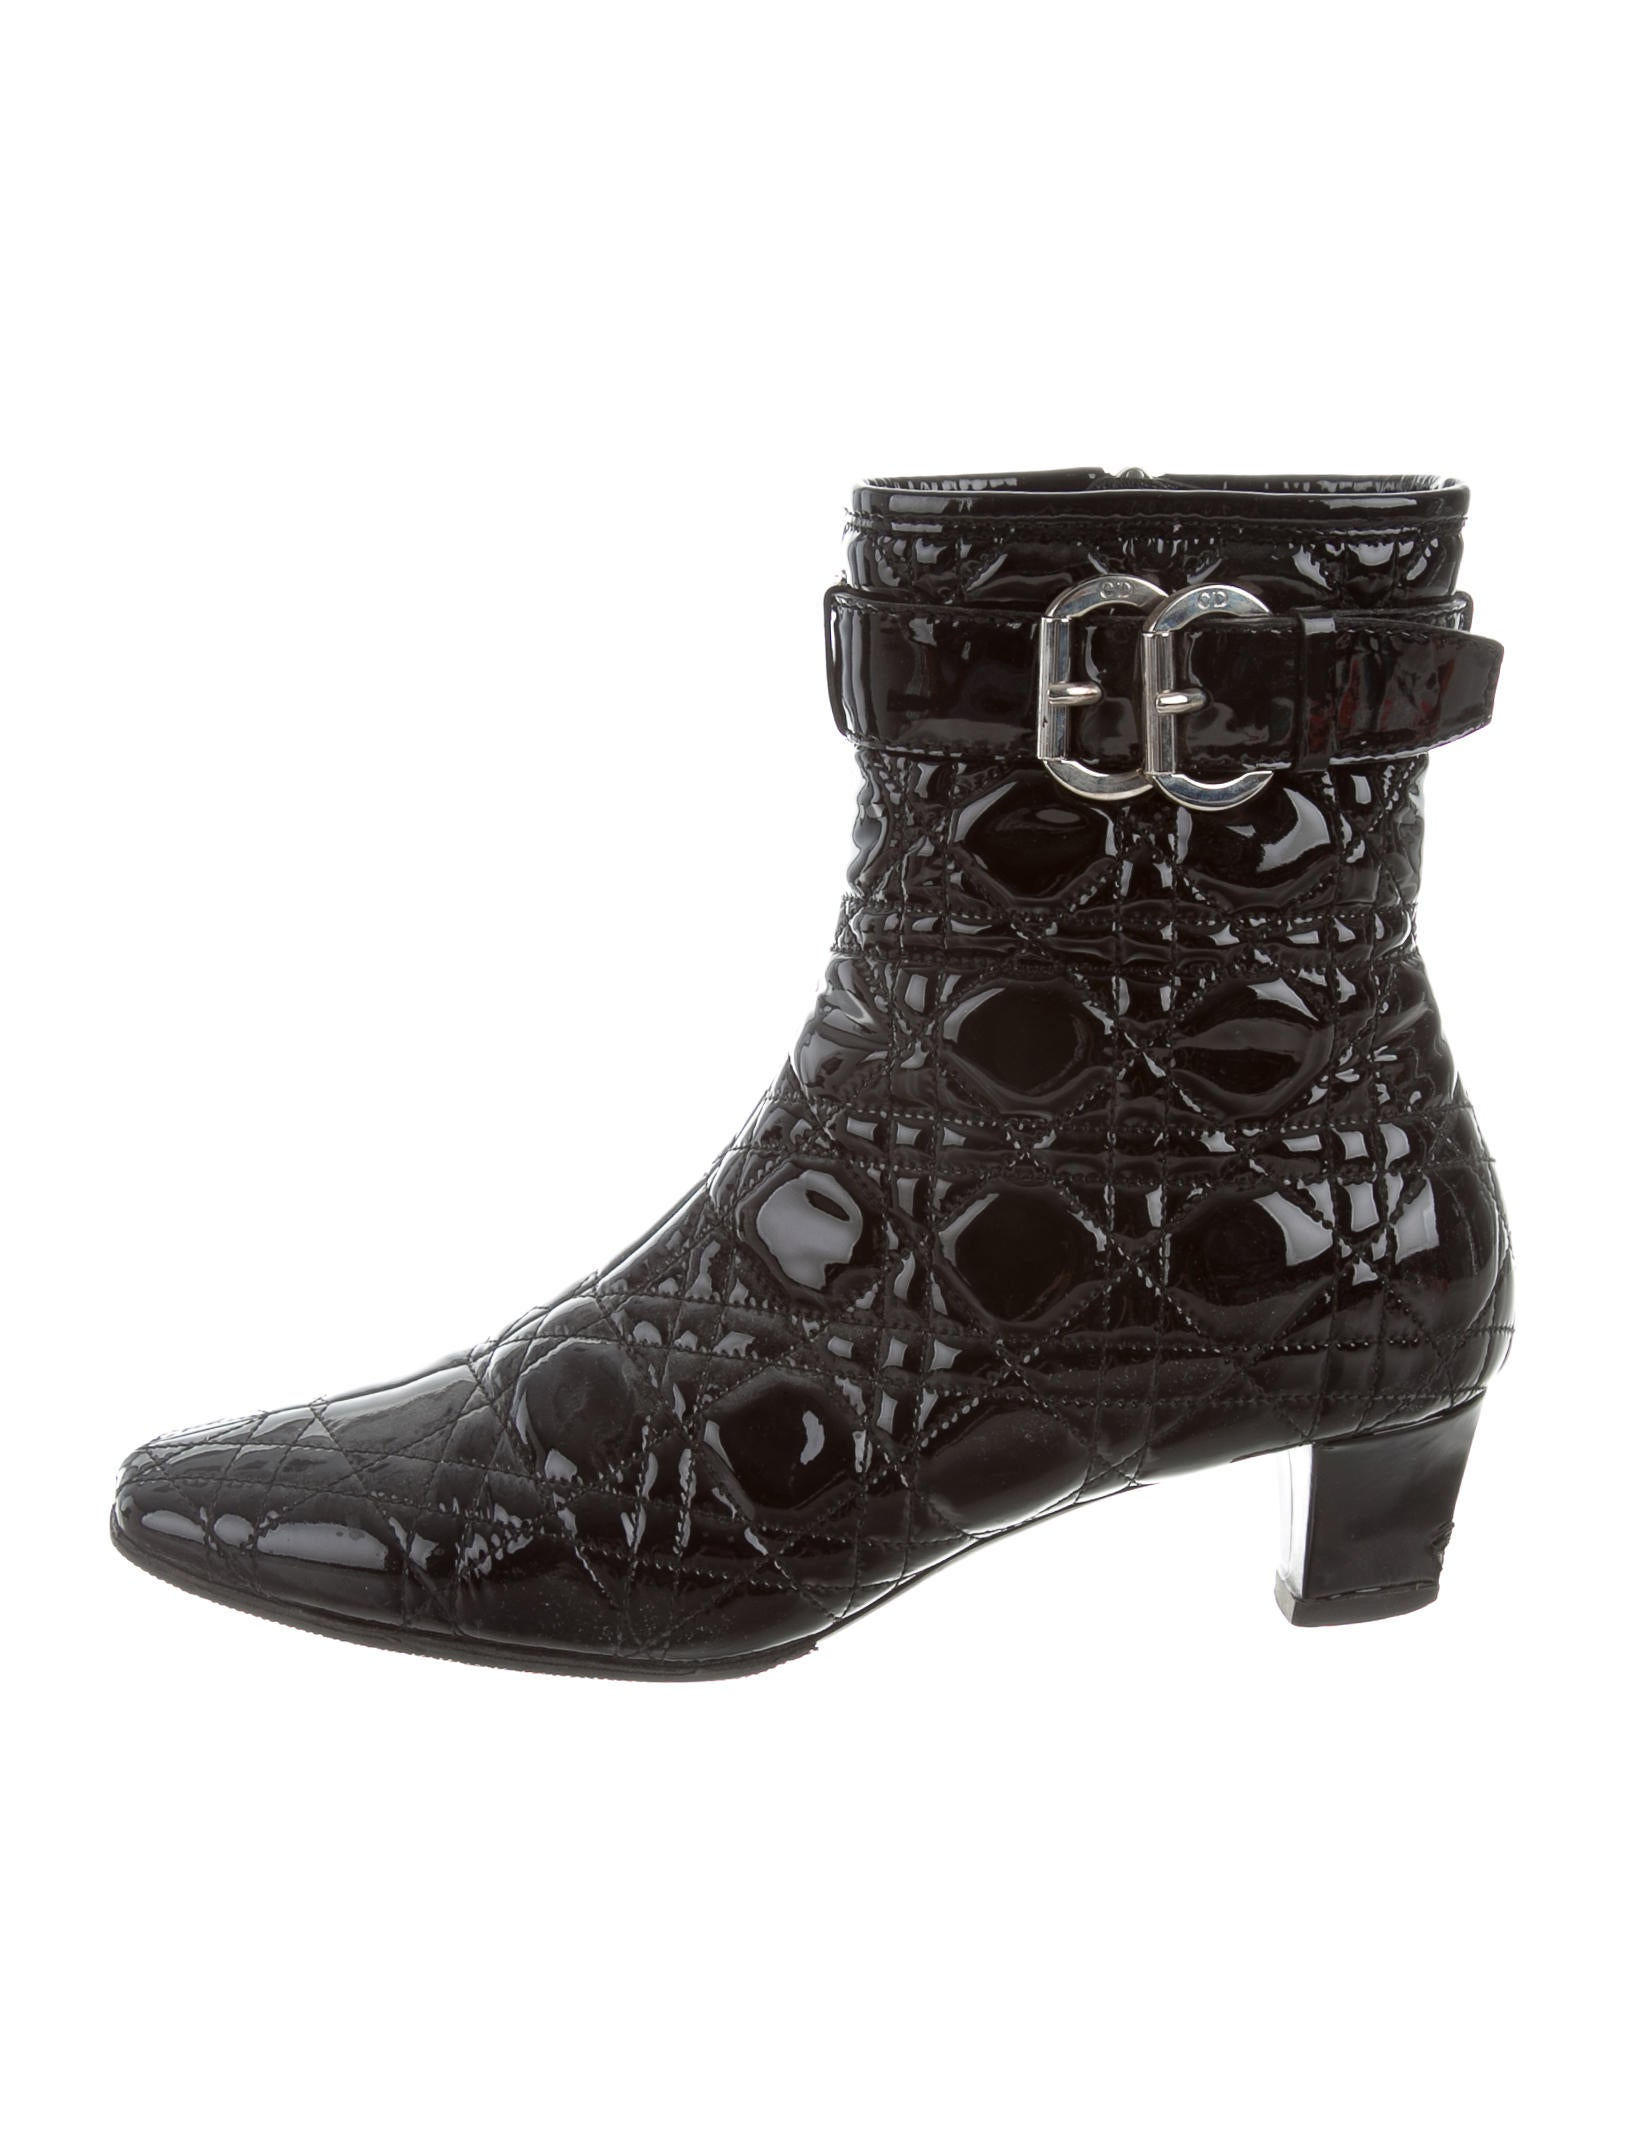 Christian Dior Cannage Leather Ankle Boots